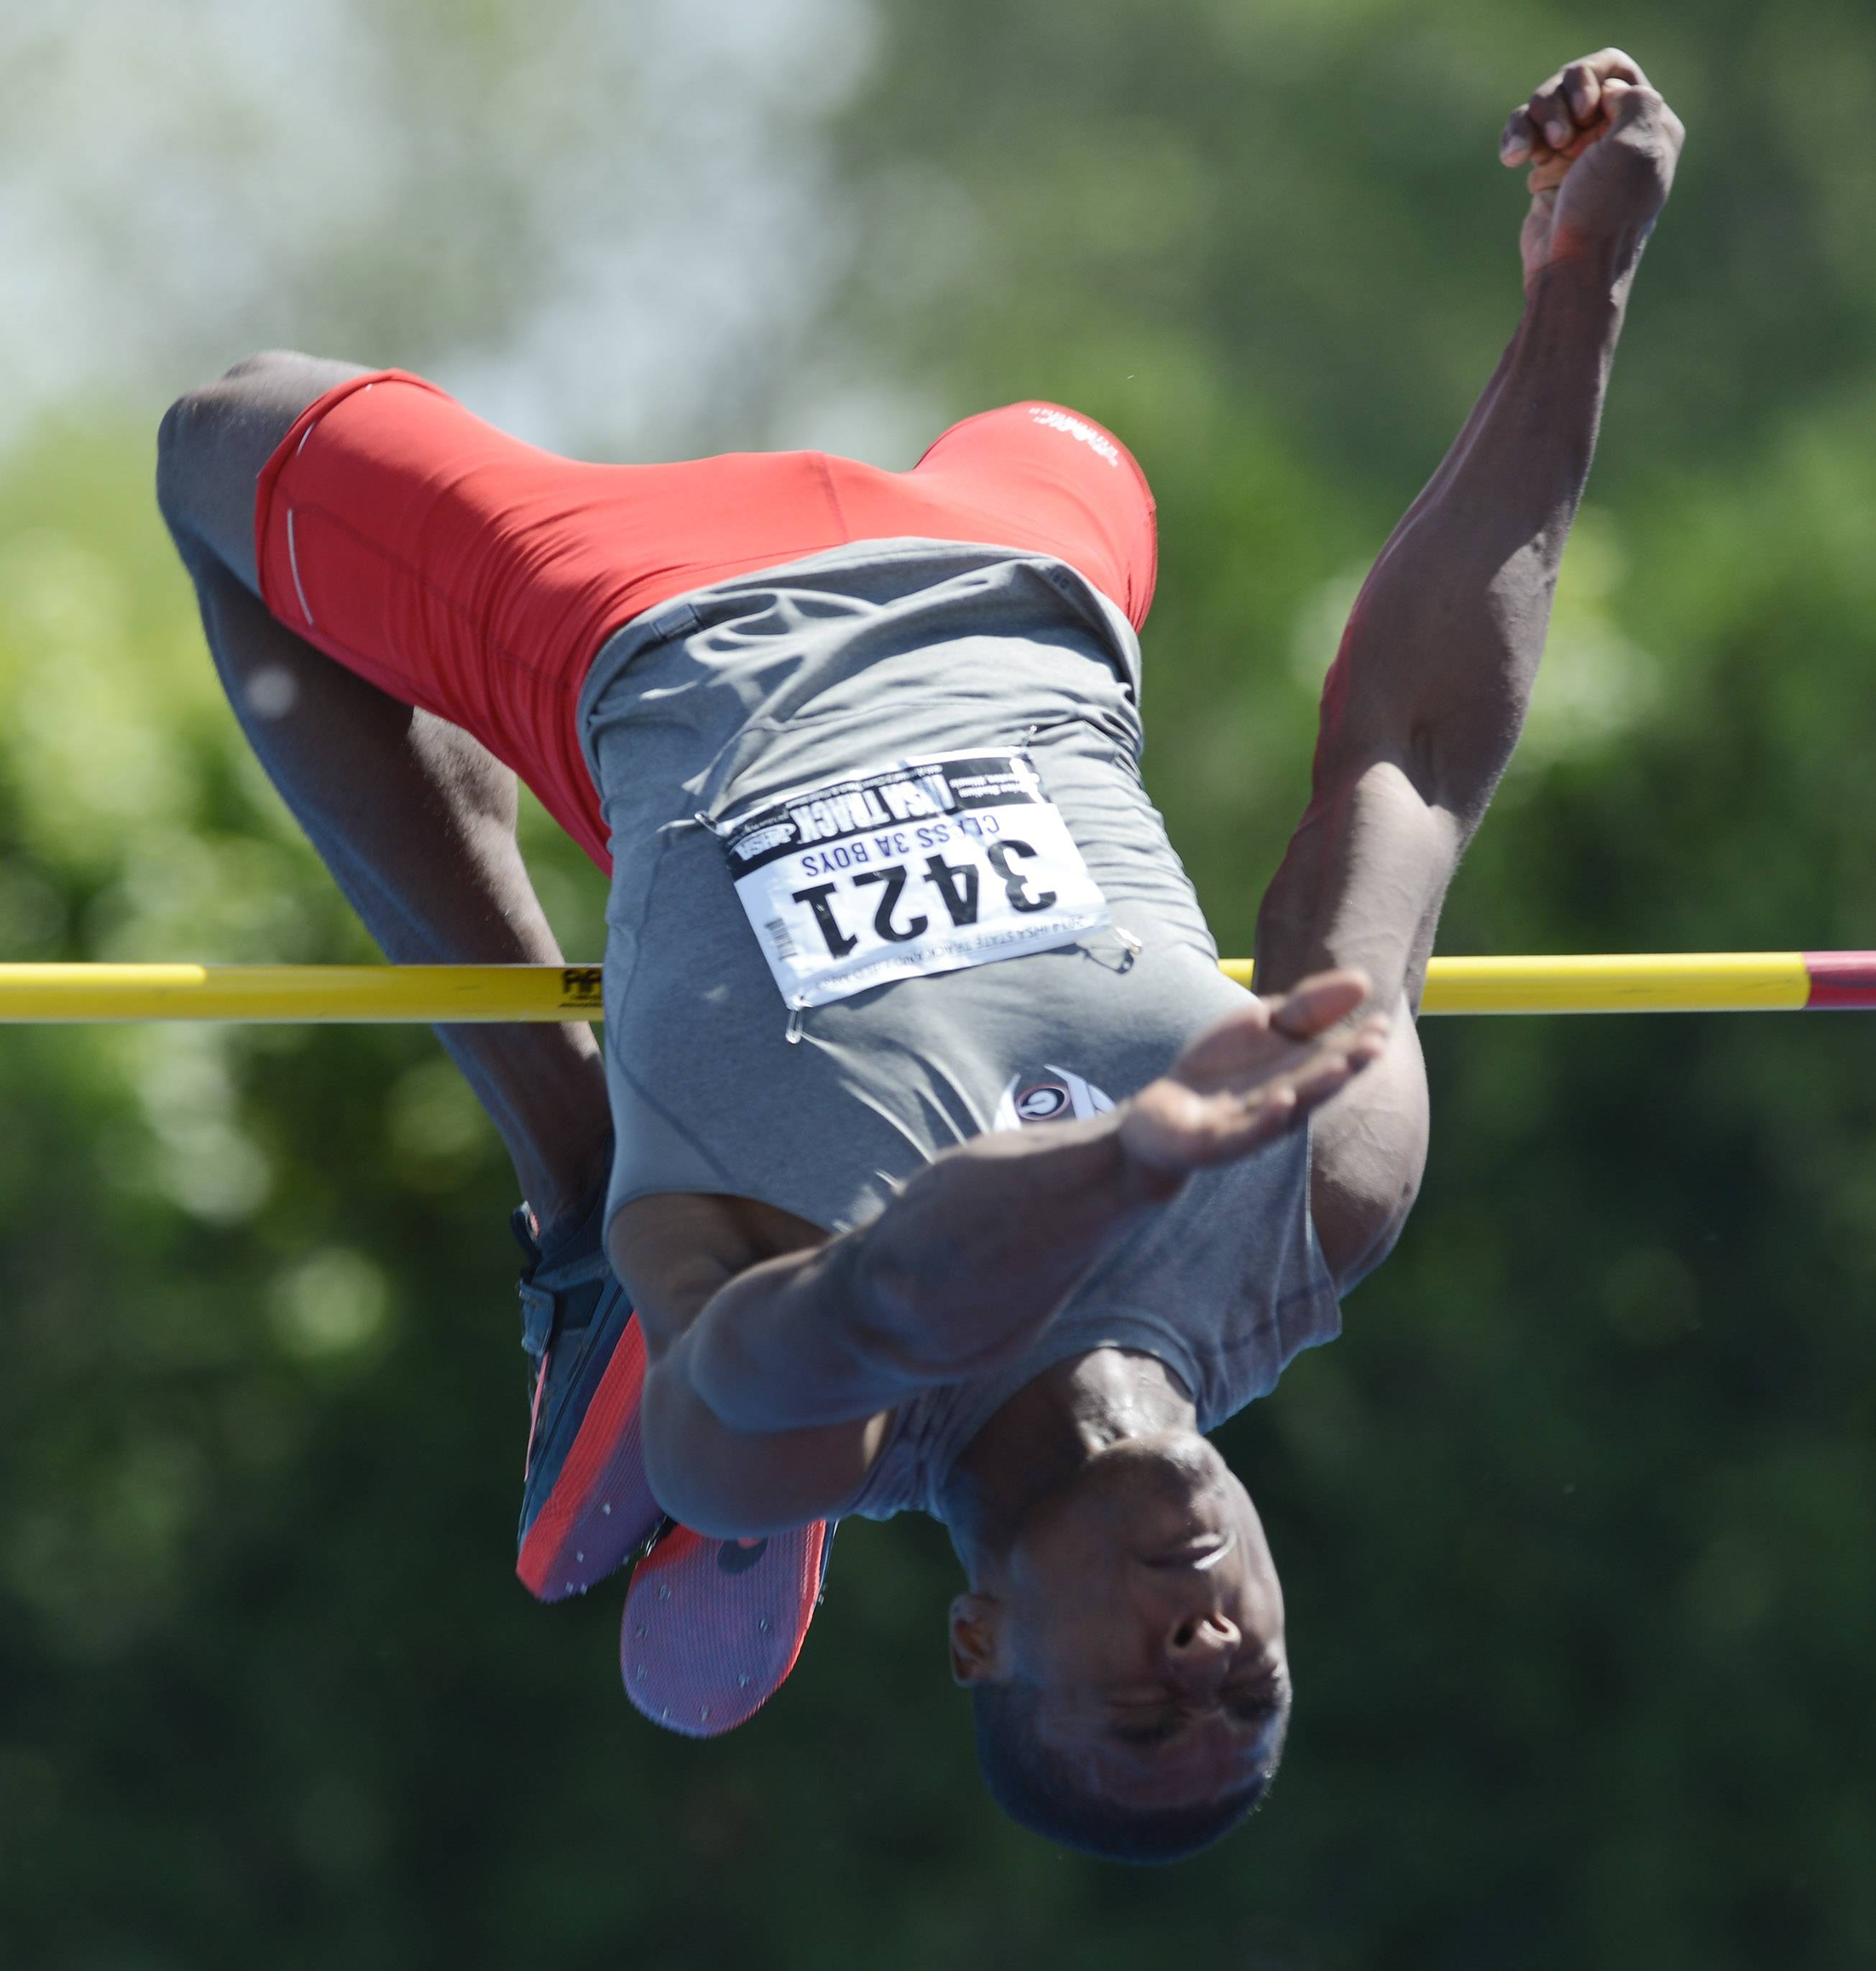 Grant's Jonathan Wells clears the high jump bar during the boys class 3A state track and field finals in Charleston Saturday.